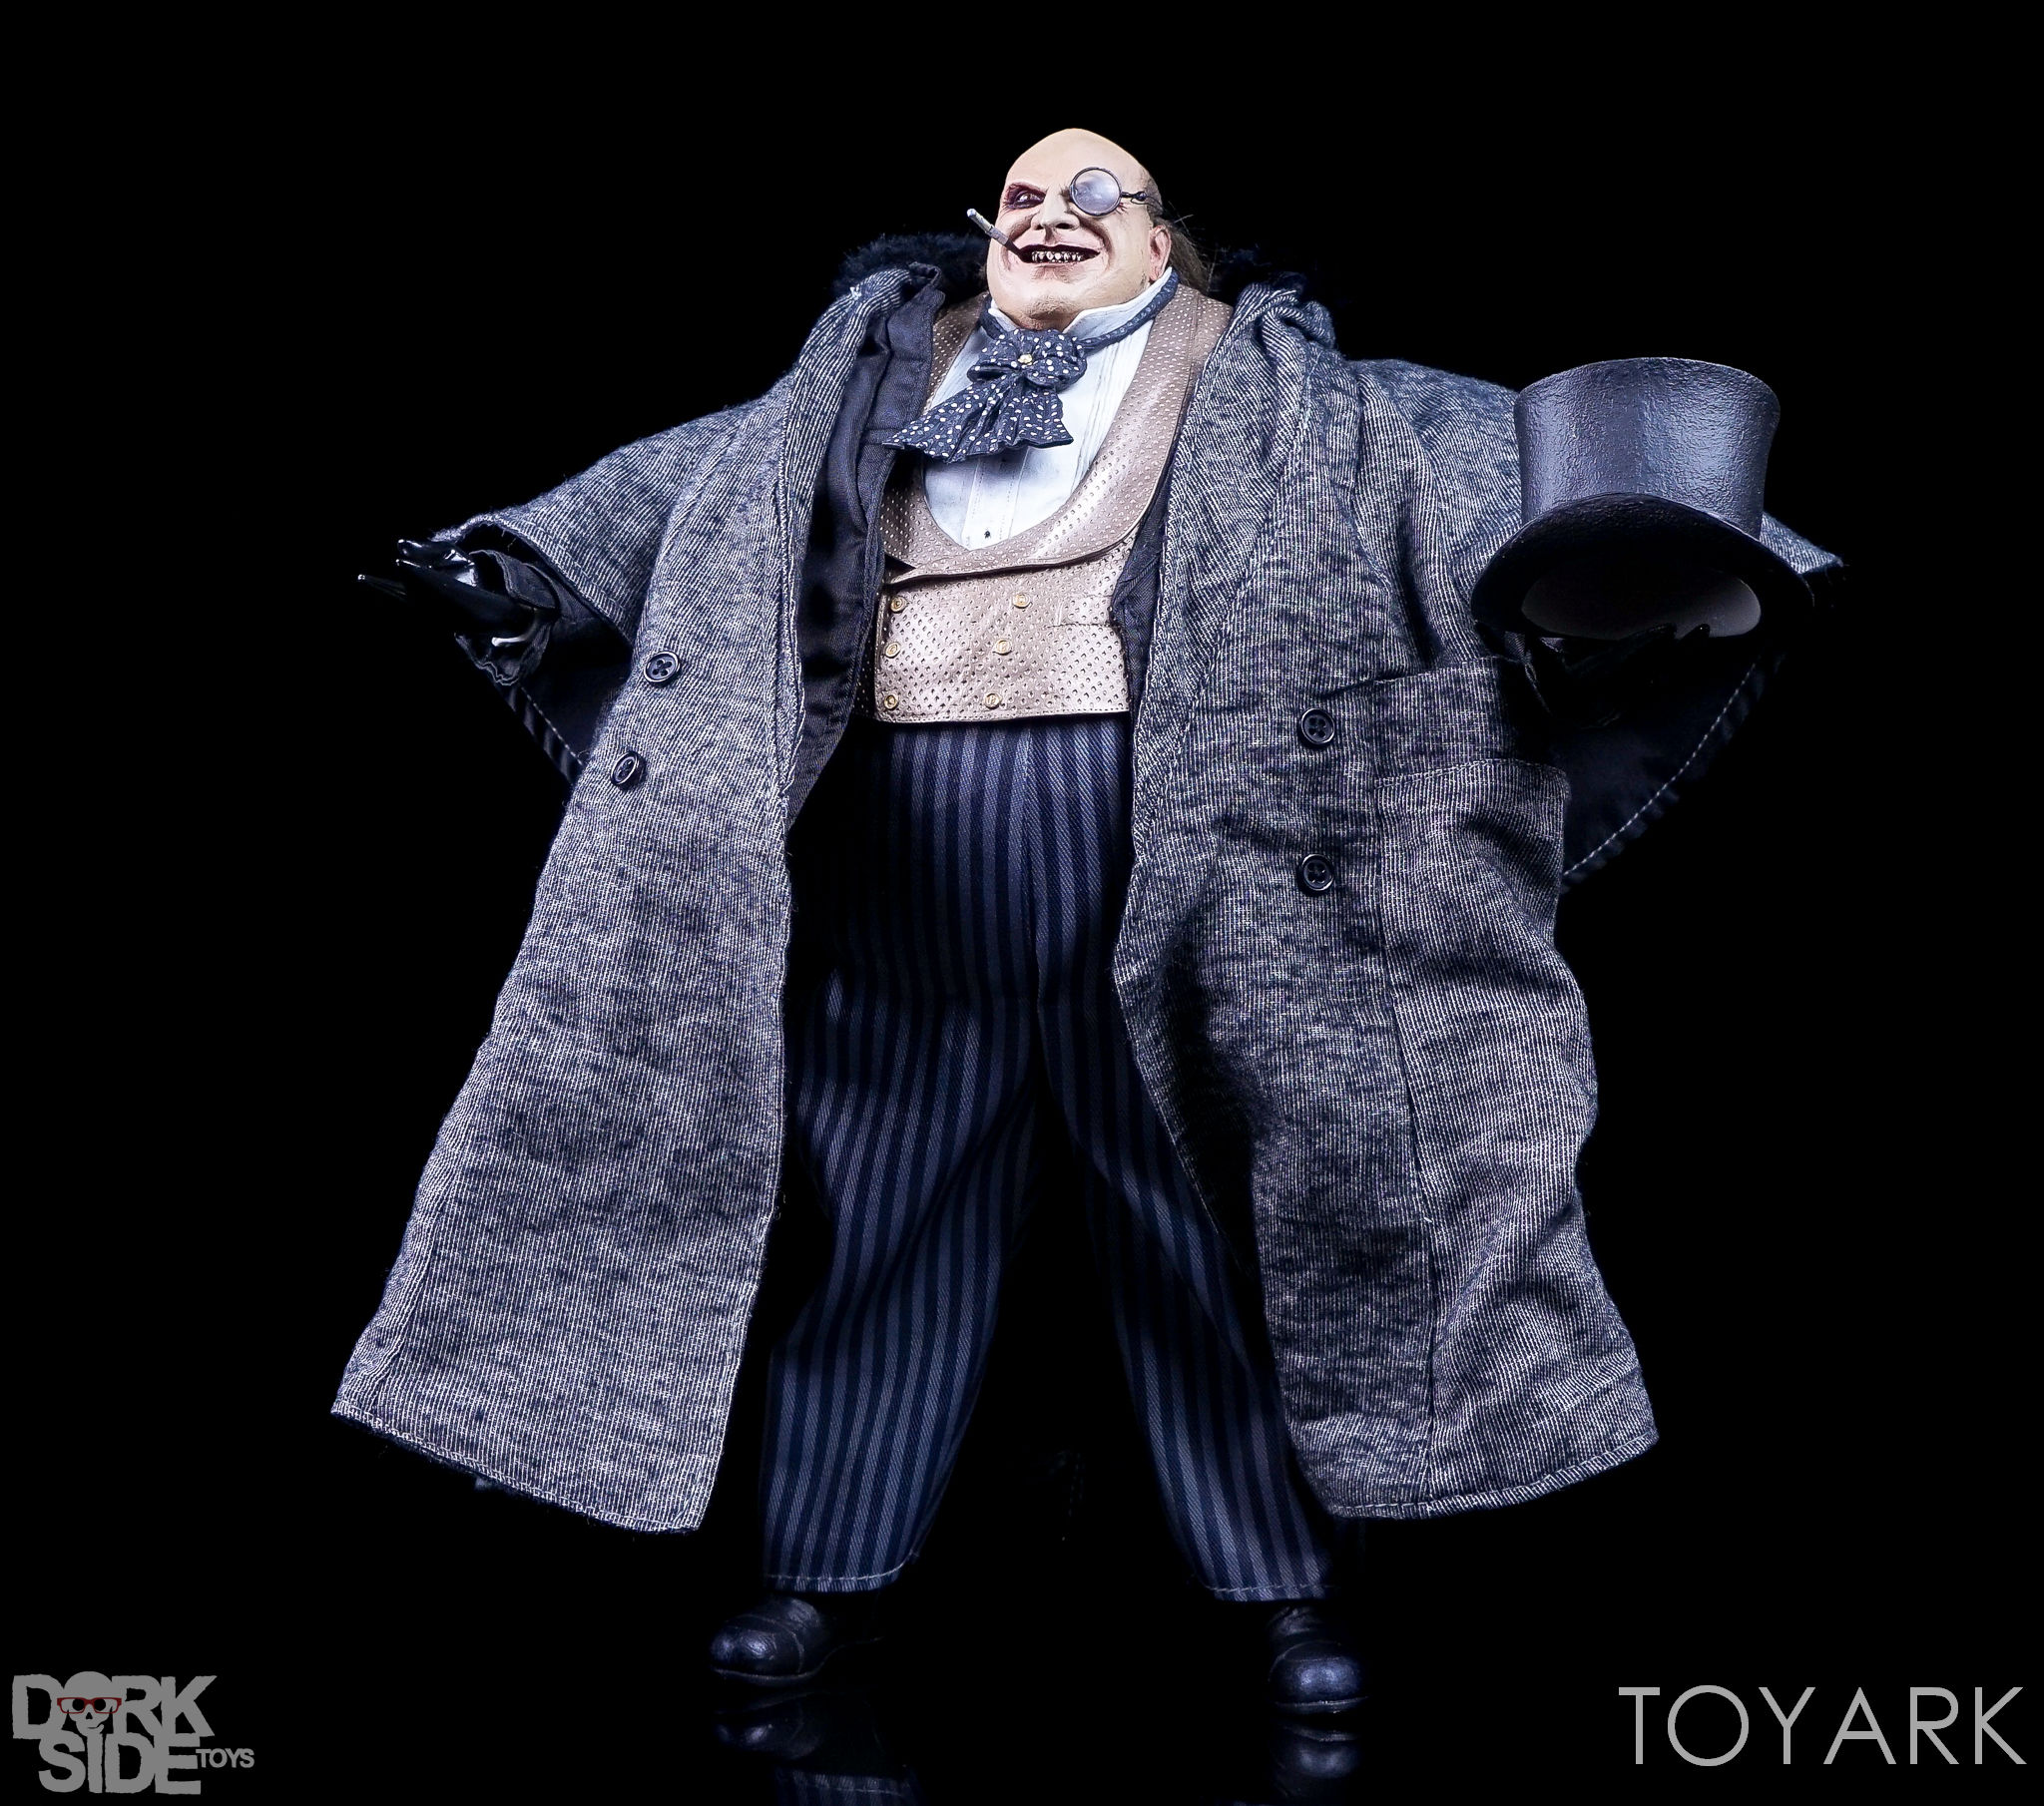 http://news.toyark.com/wp-content/uploads/sites/4/2017/01/NECA-Mayoral-Penguin-020.jpg